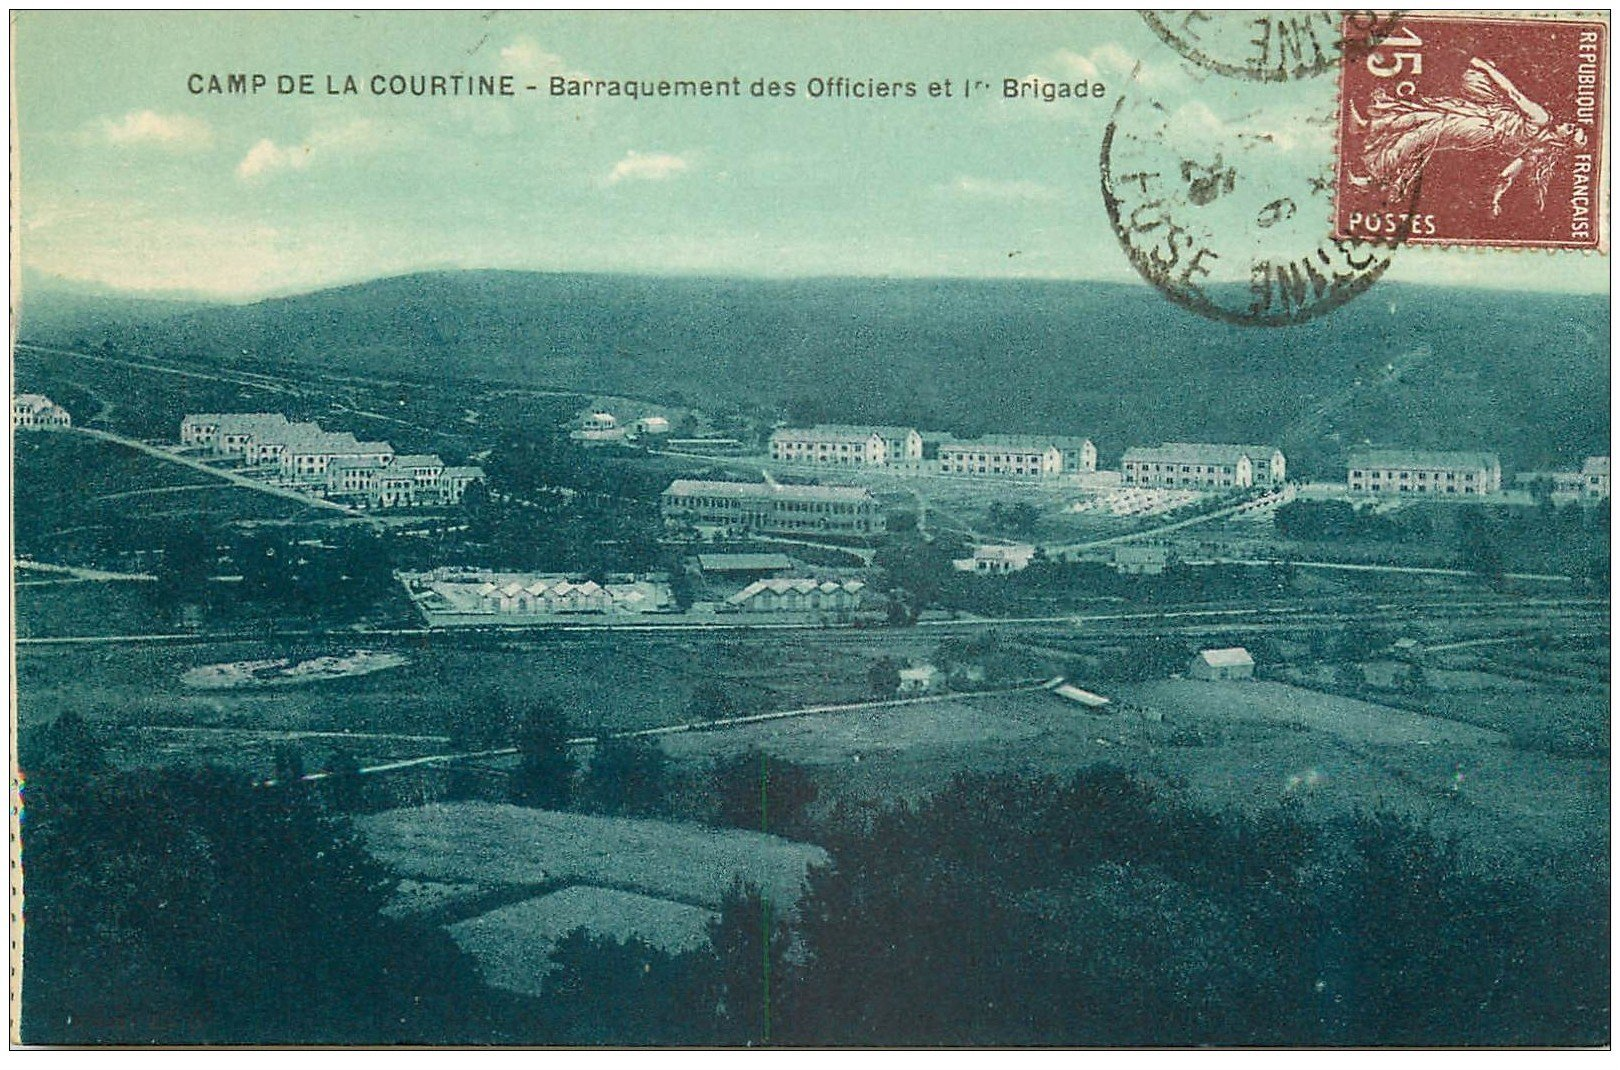 carte postale ancienne 23 CAMP DE LA COURTINE. Barraquement des Officiers Brigade 1925